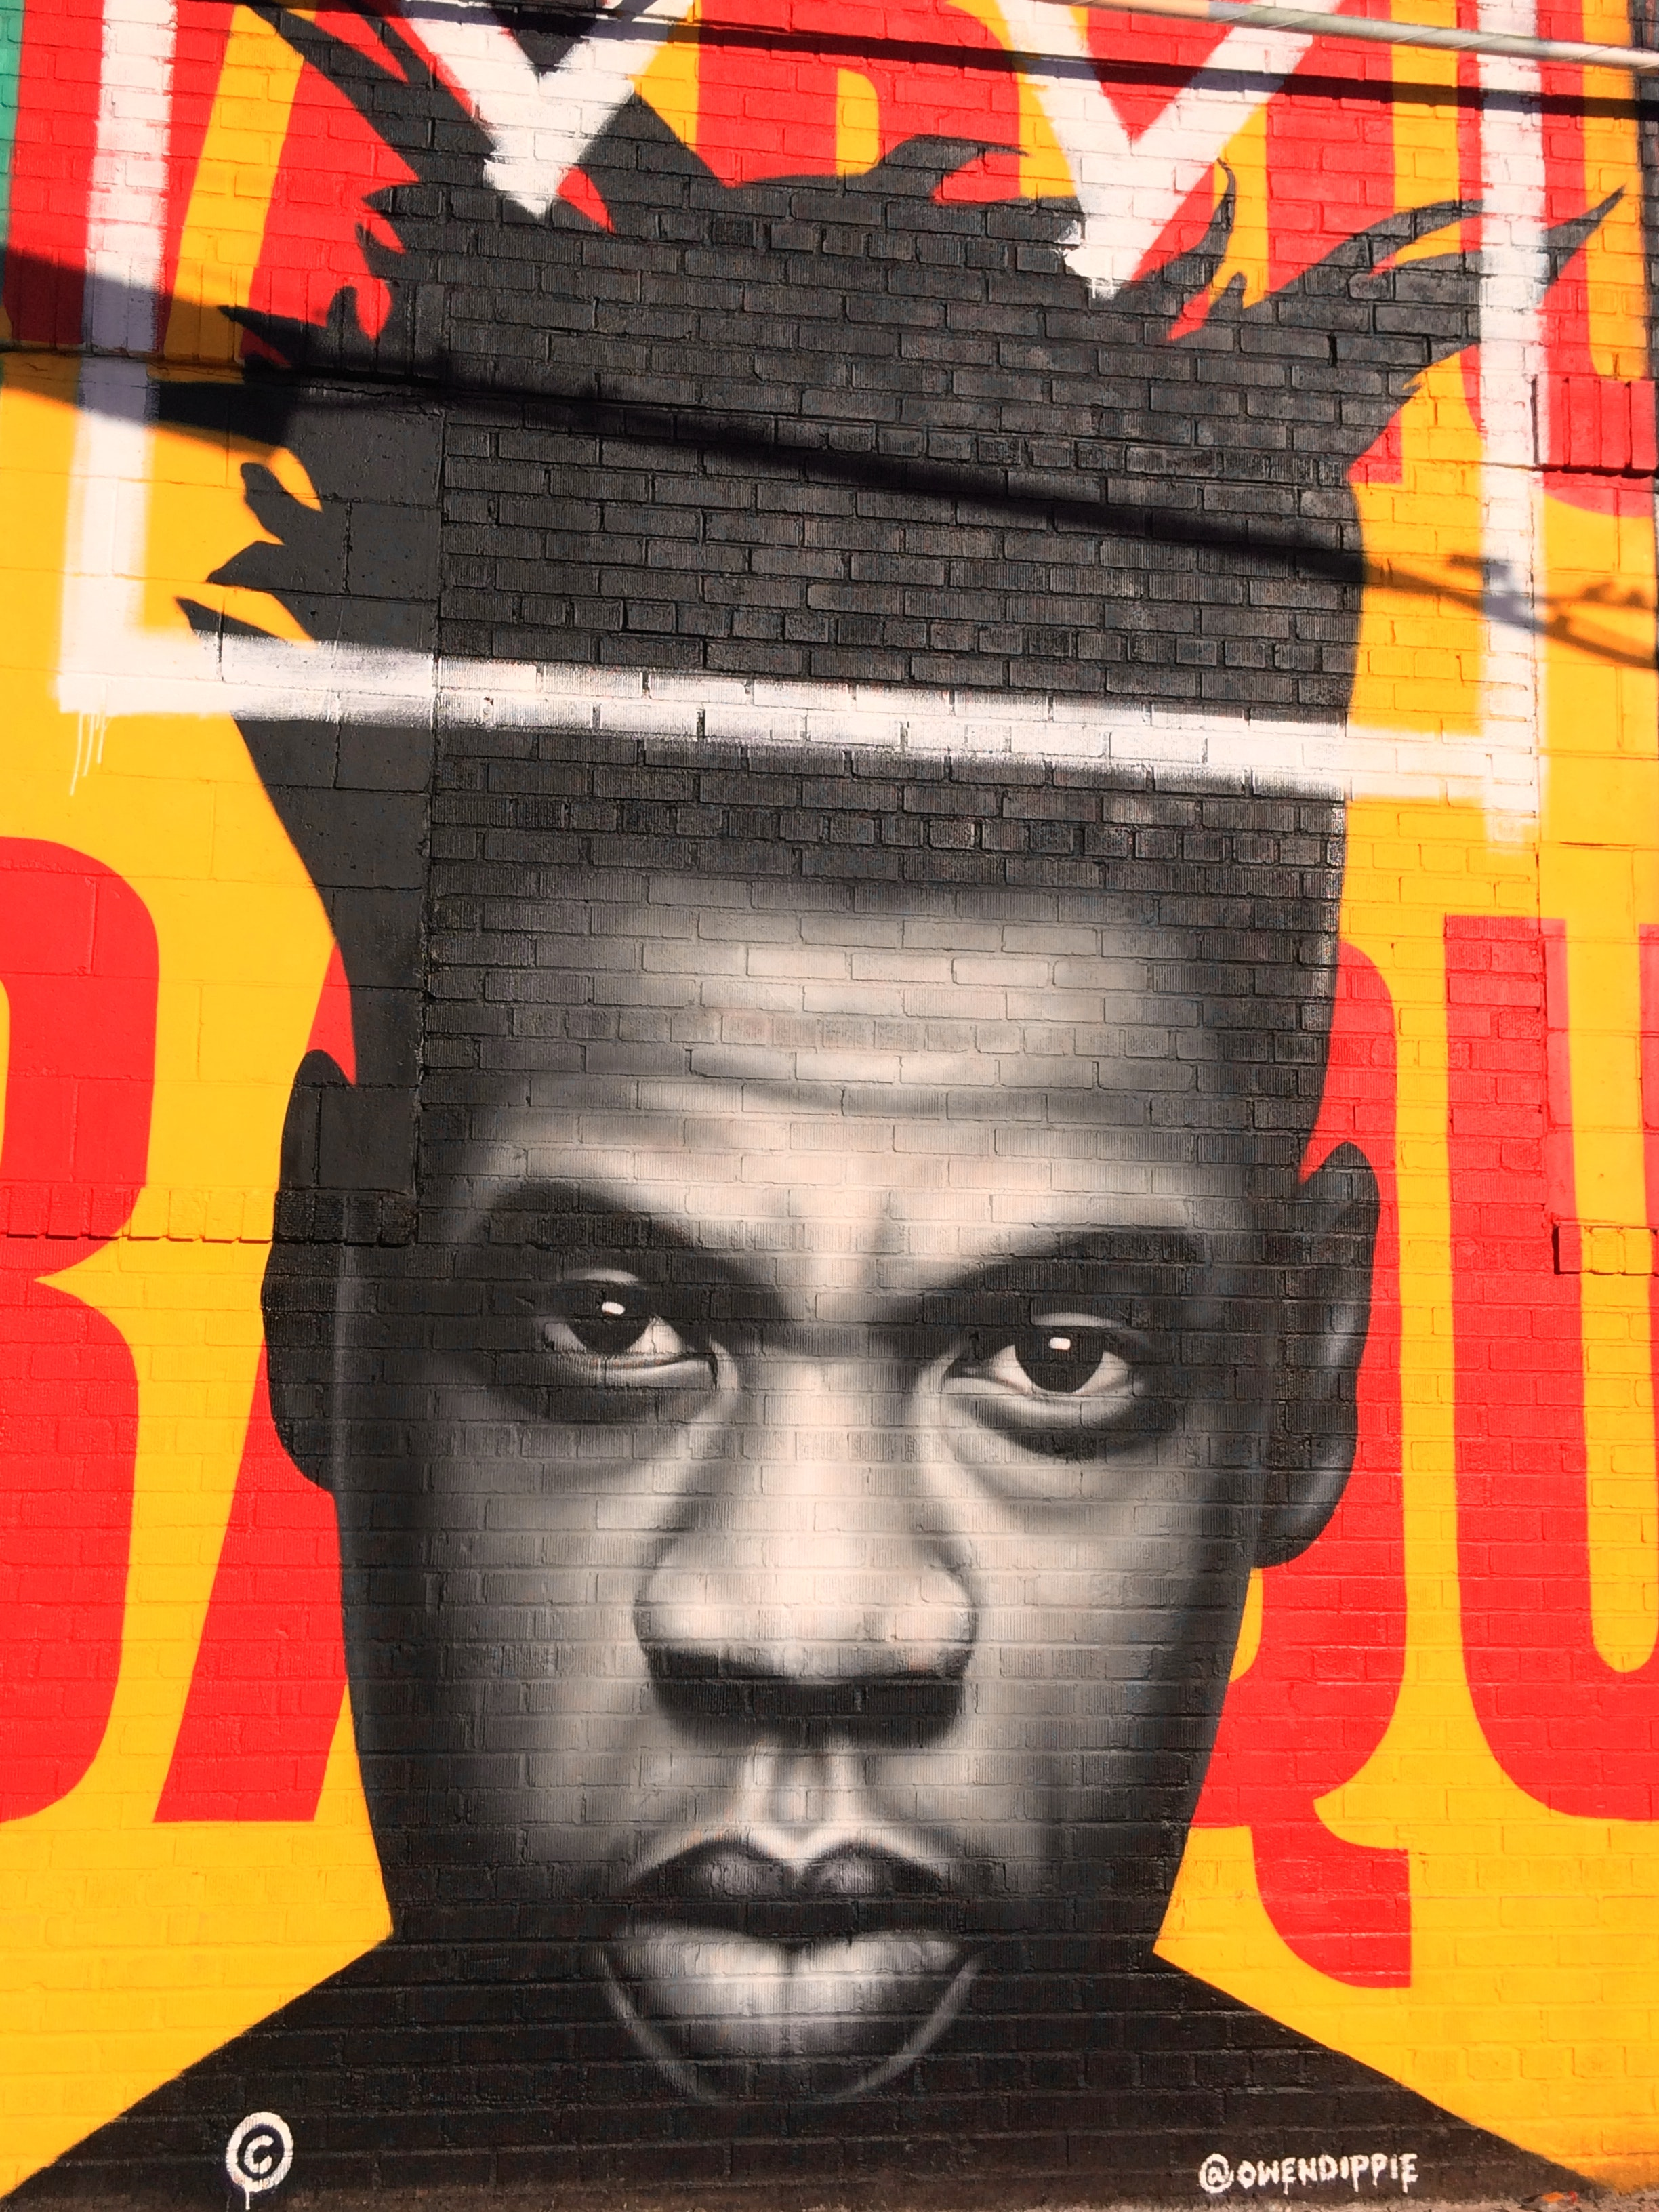 Owen Dippie;s completed Jay-z Basquiat tribute for the Bushwick Collective